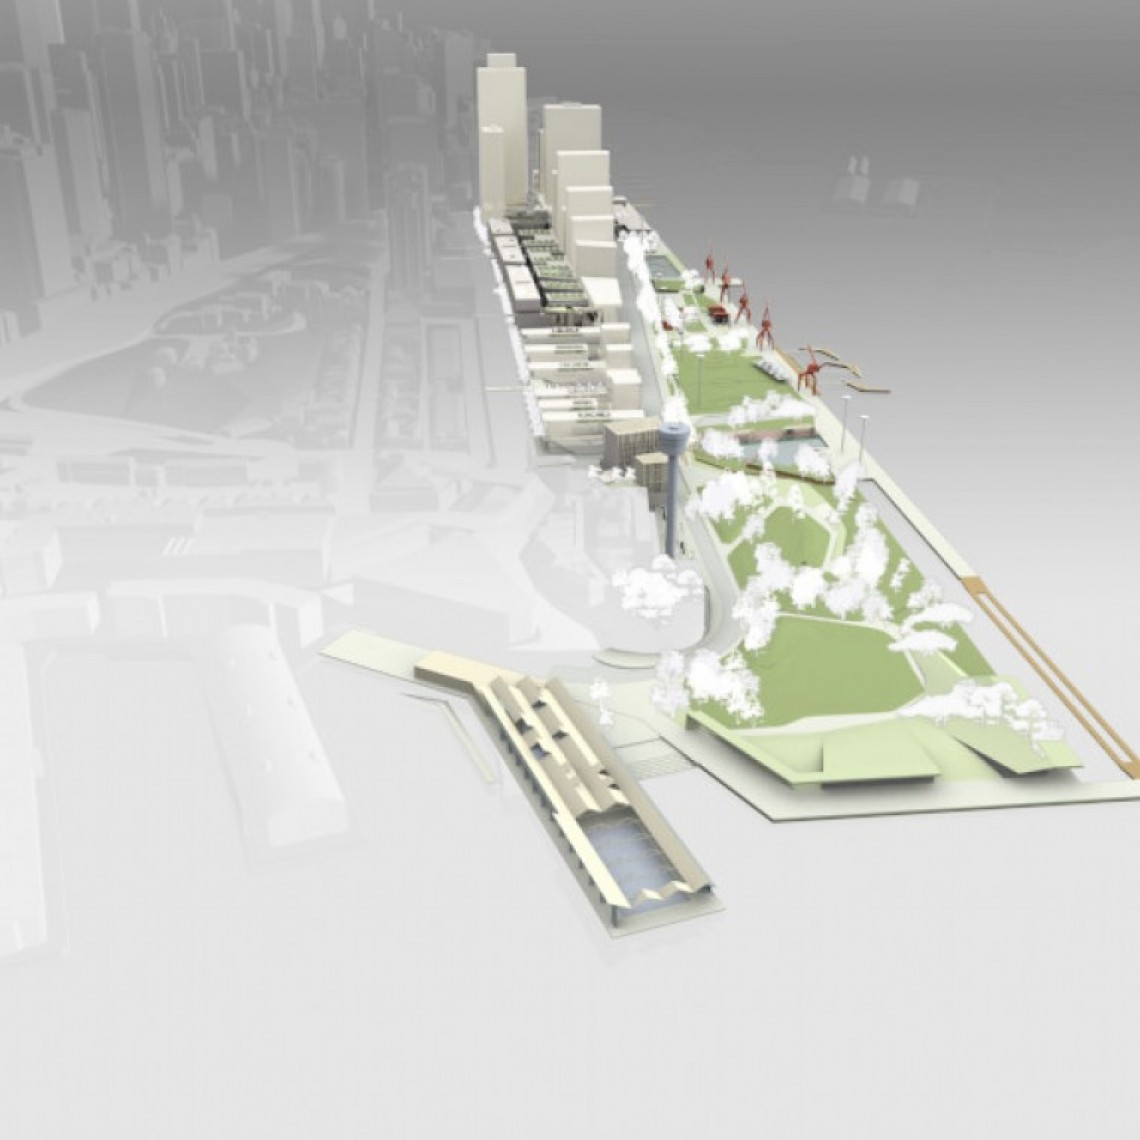 East Darling Harbour Visualisation